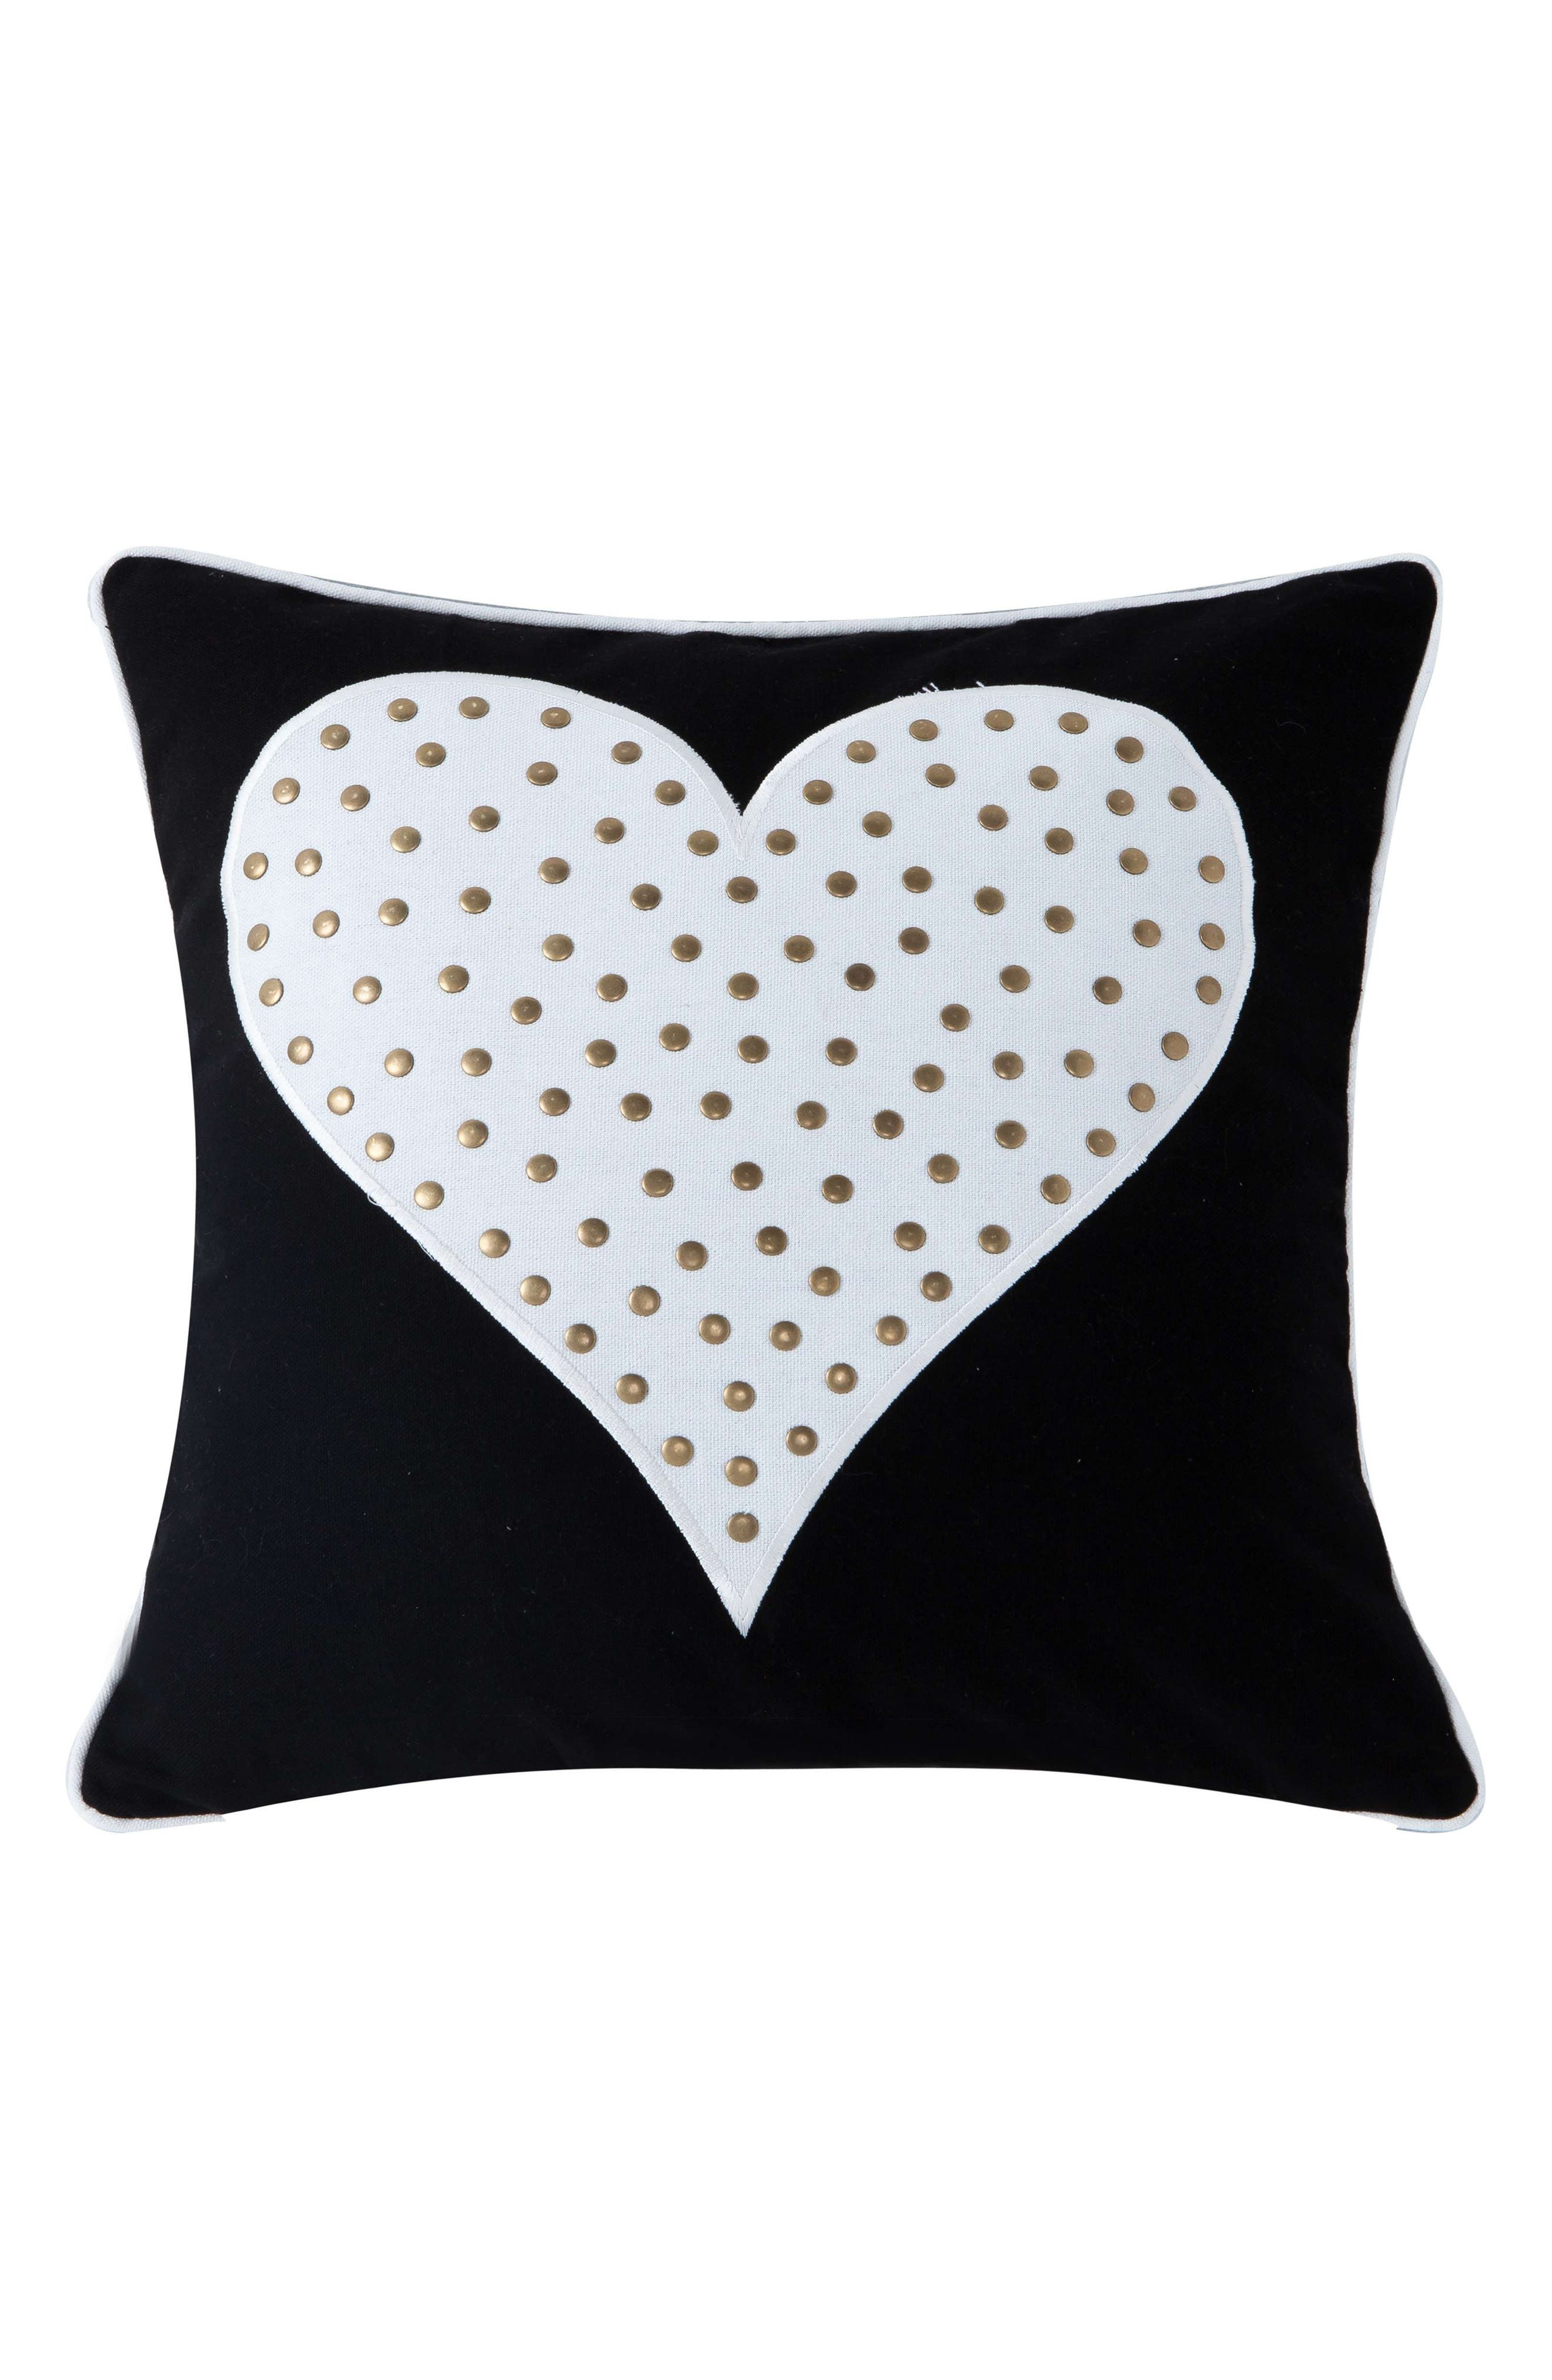 Alternate Image 1 Selected - kensie Stellah Studded Heart Accent Pillow